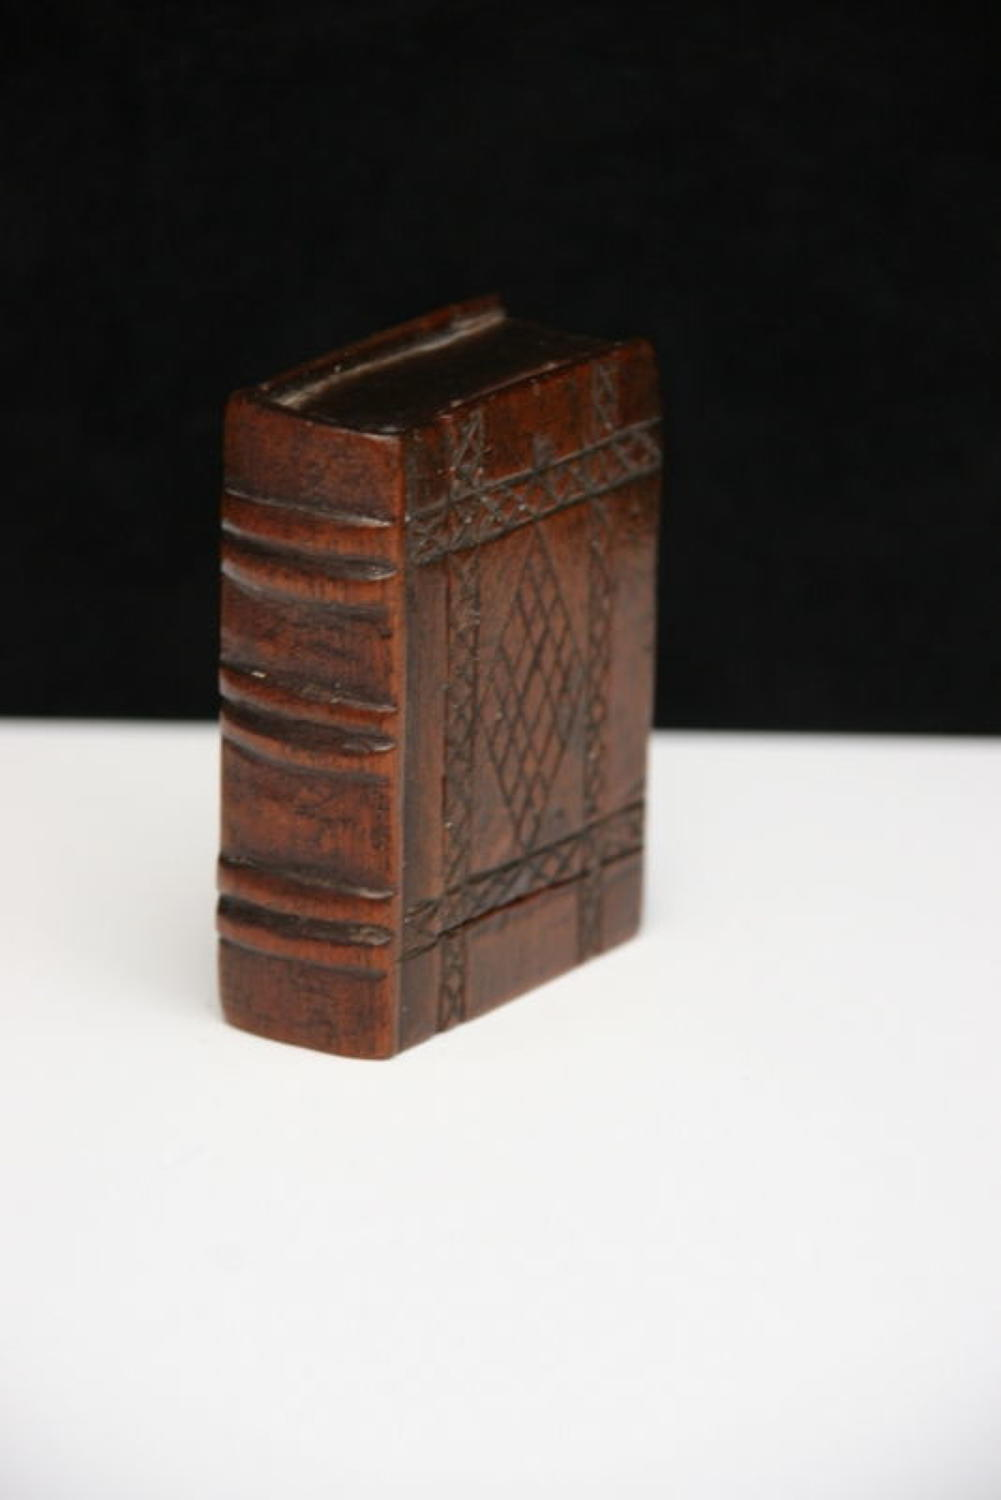 19th century Book box form Snuff box